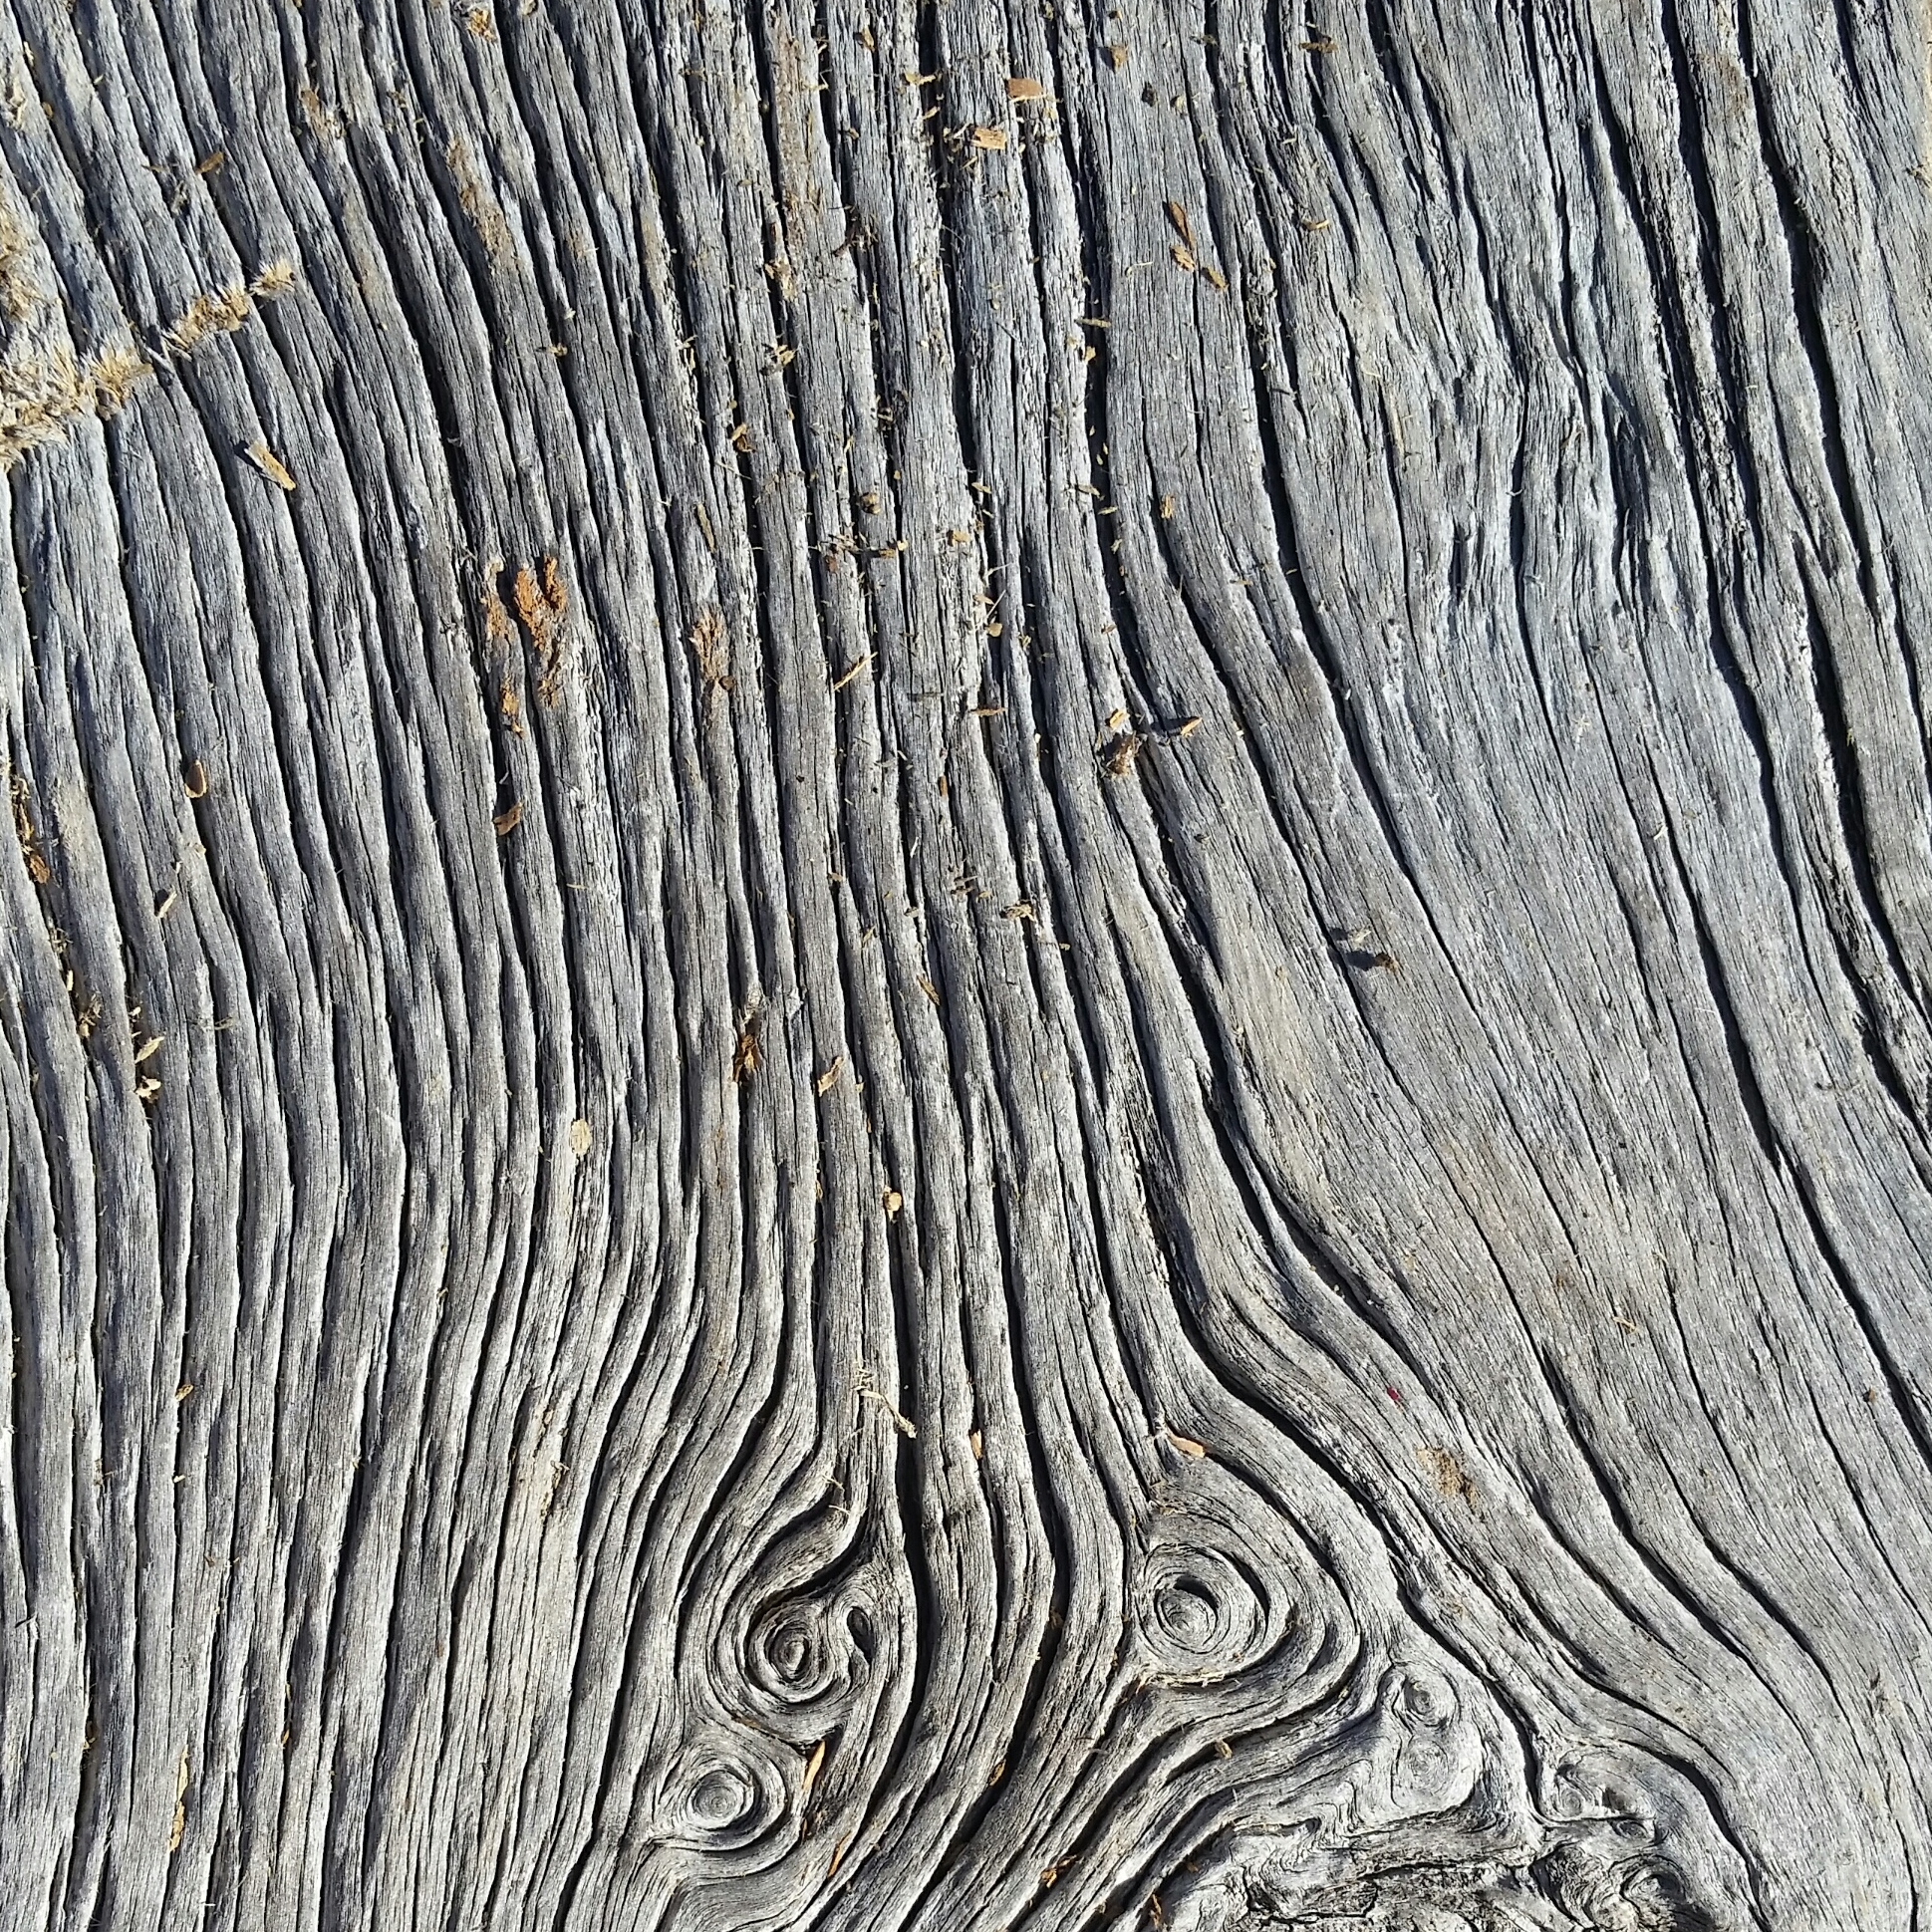 Natural grain of reclaimed gray barn siding